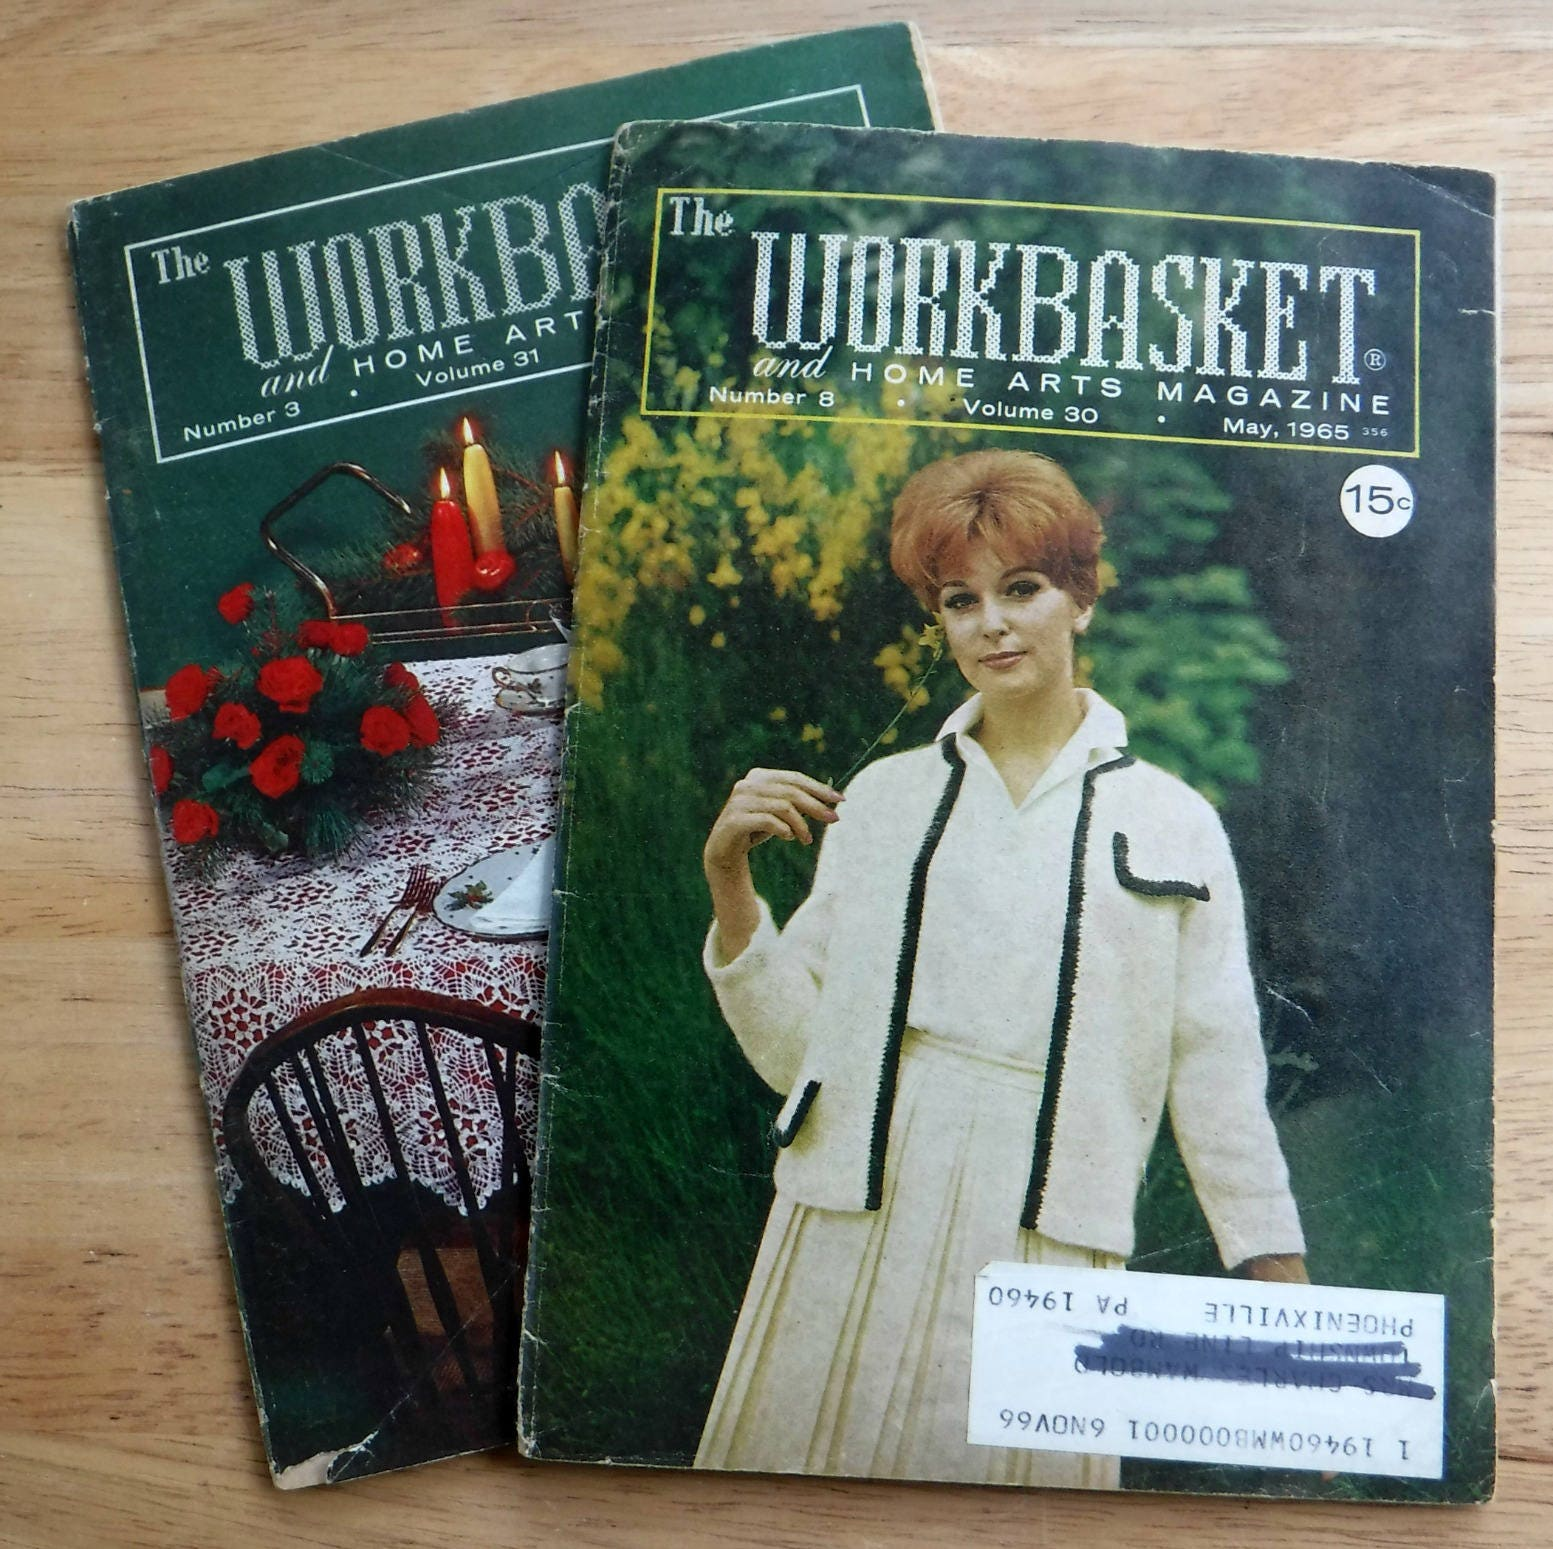 Lot of 2 1960s the workbasket and home arts magazine vintage lot of 2 1960s the workbasket and home arts magazine vintage crochet knit patterns sixties vintage crochet doilies tablecloths patterns bankloansurffo Choice Image